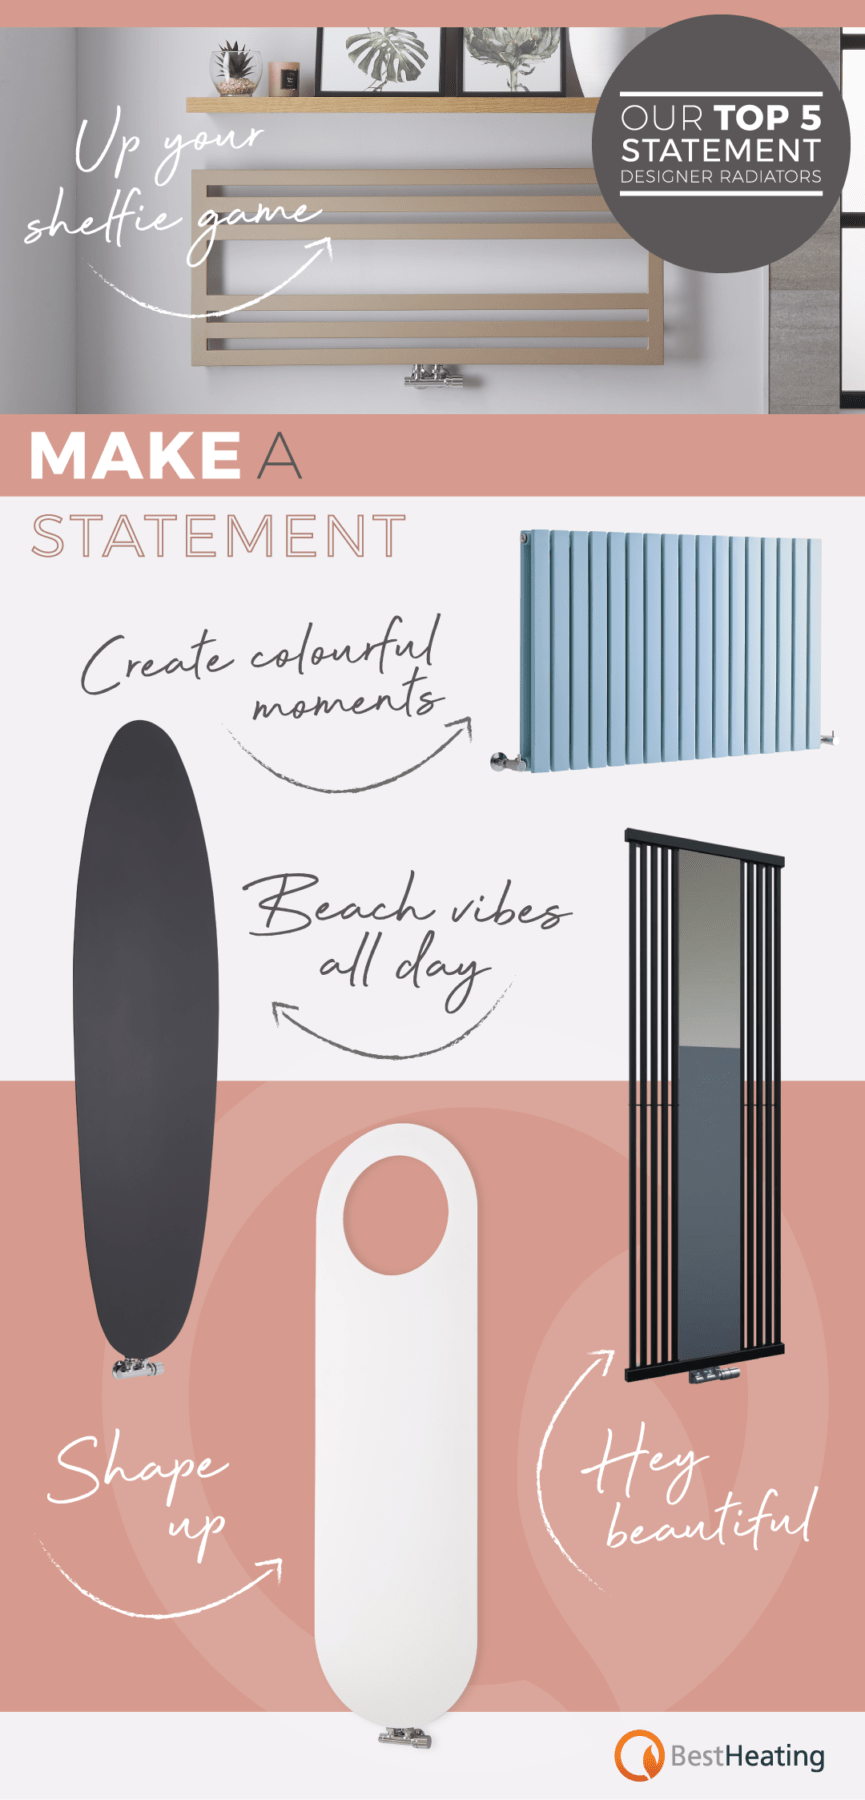 Top 5 statement designer radiator banner